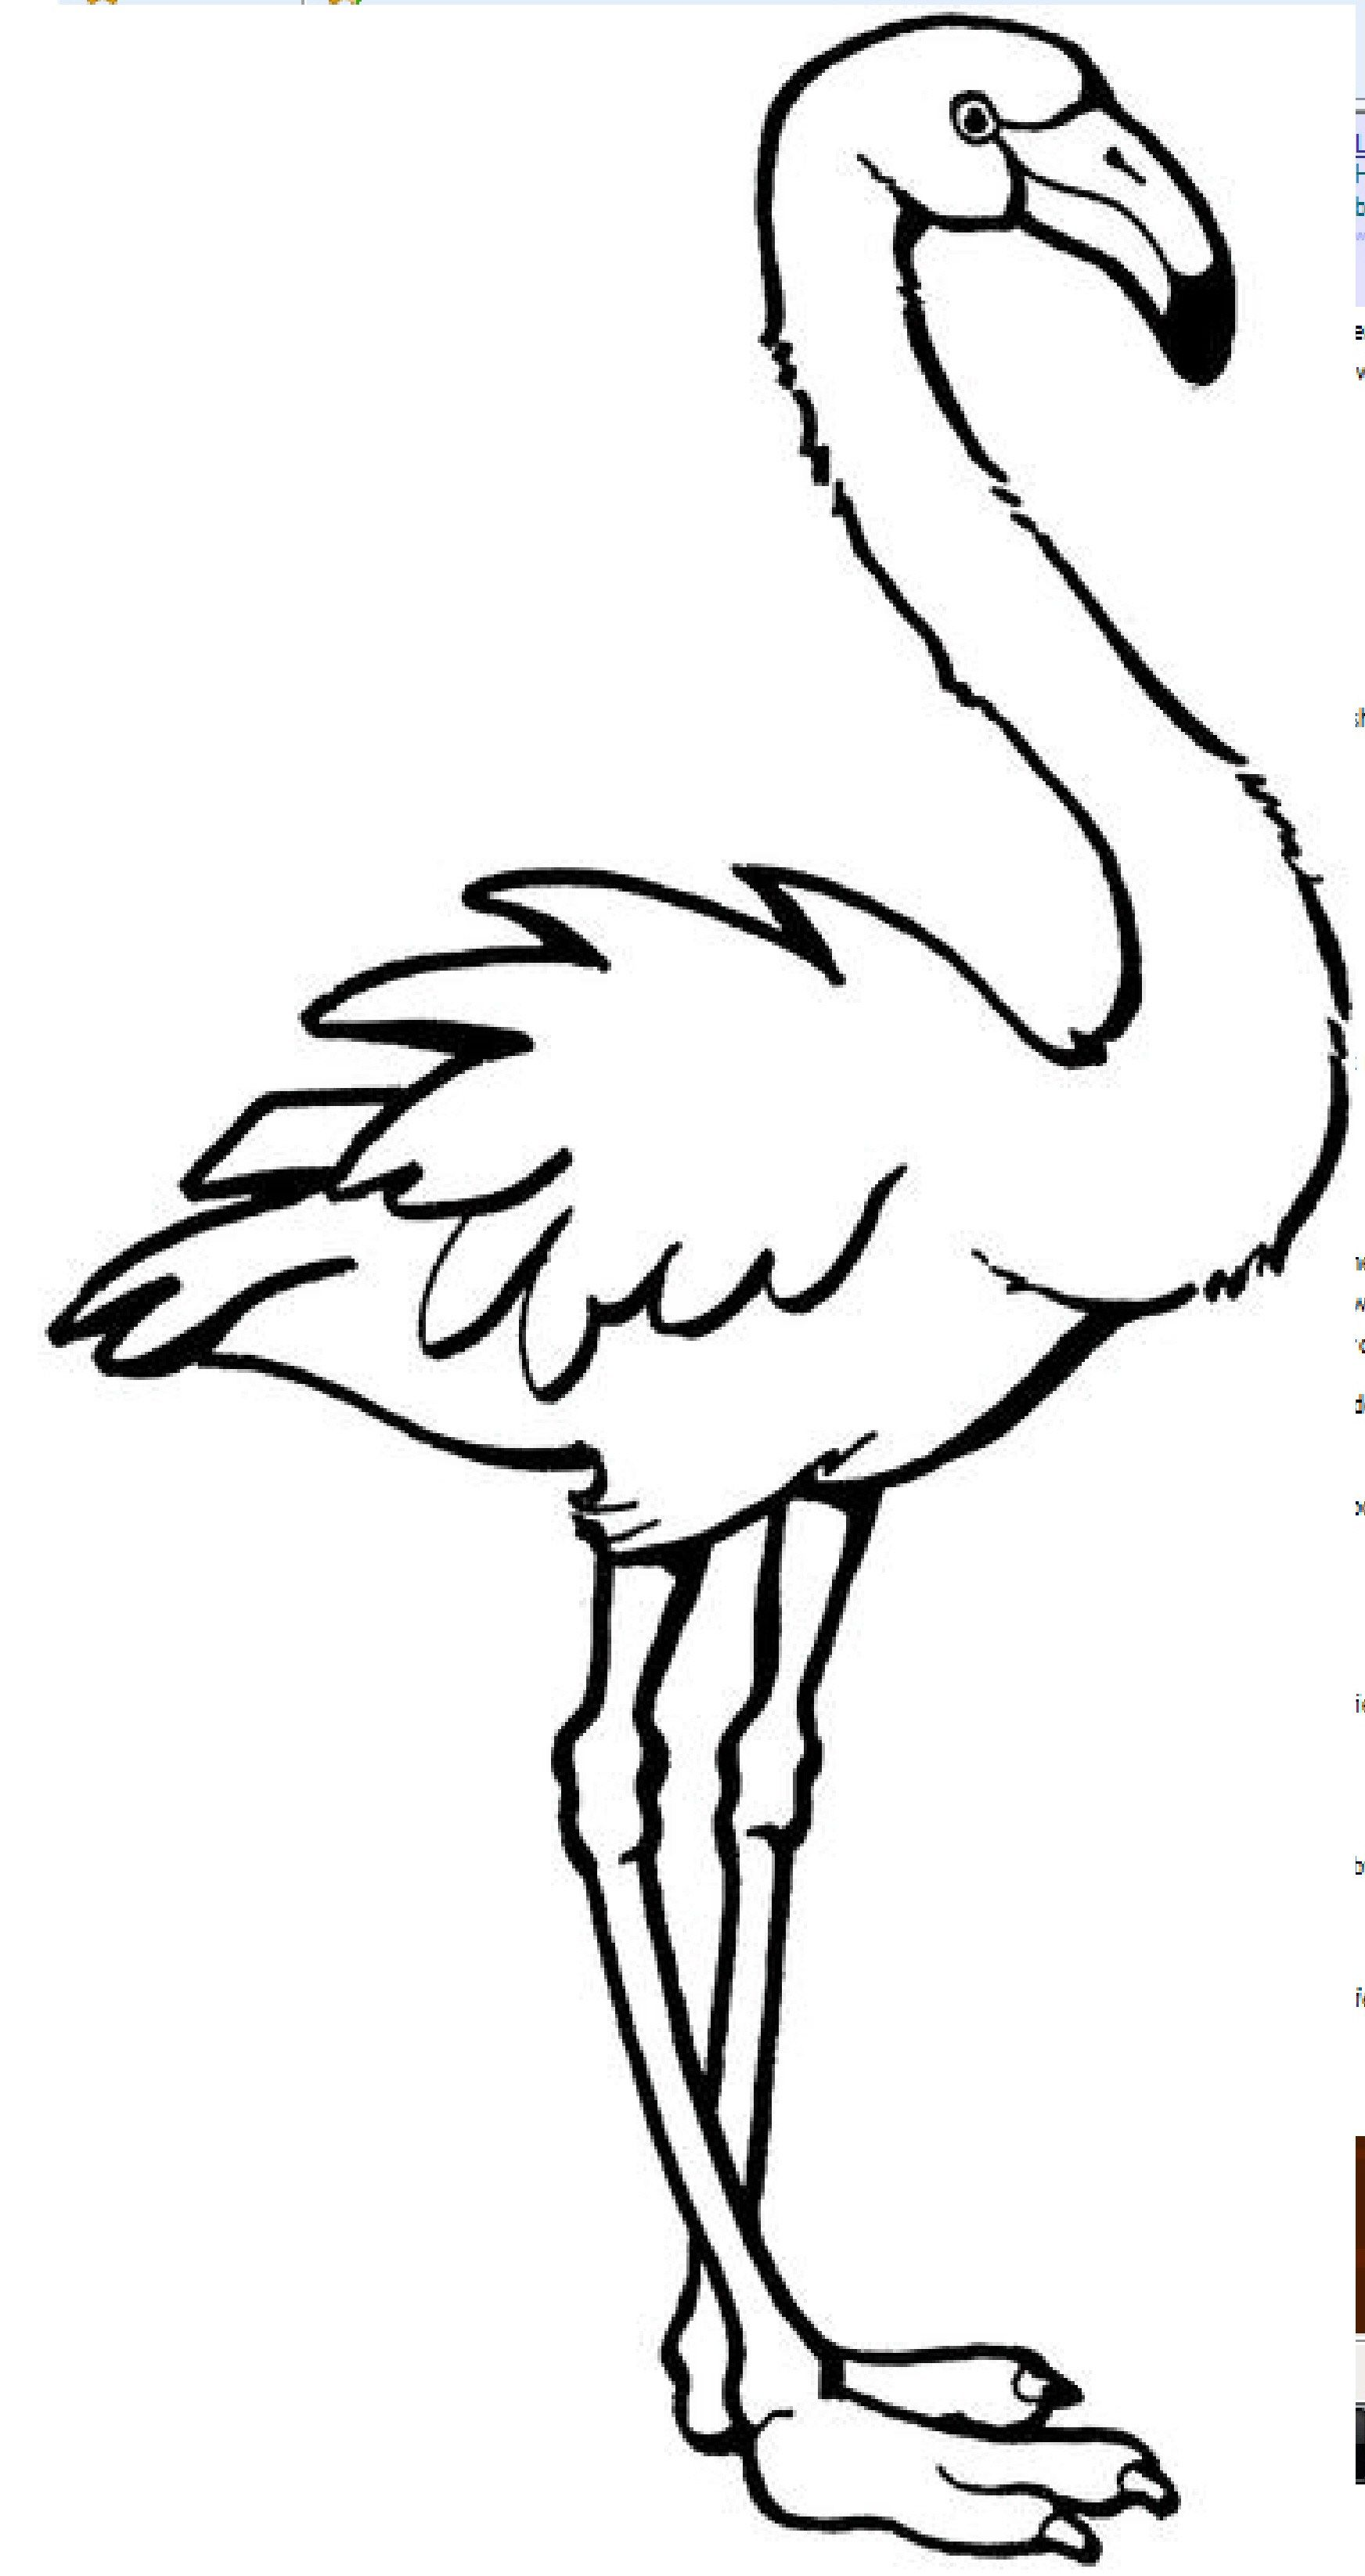 embroidery flamingo | Embroidery patterns | Pinterest